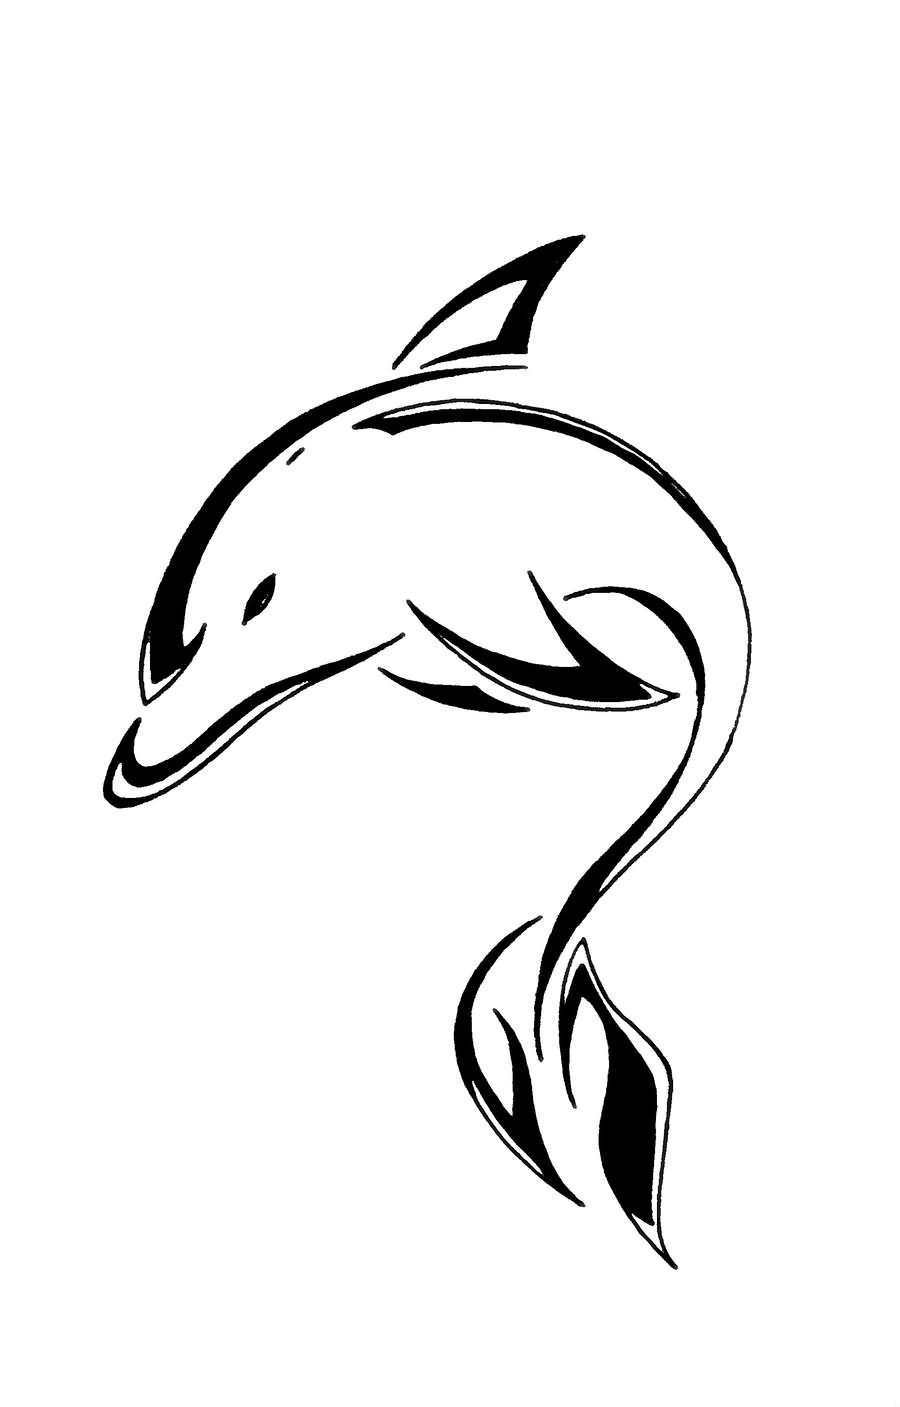 Dolphin outline tattoo - photo#7